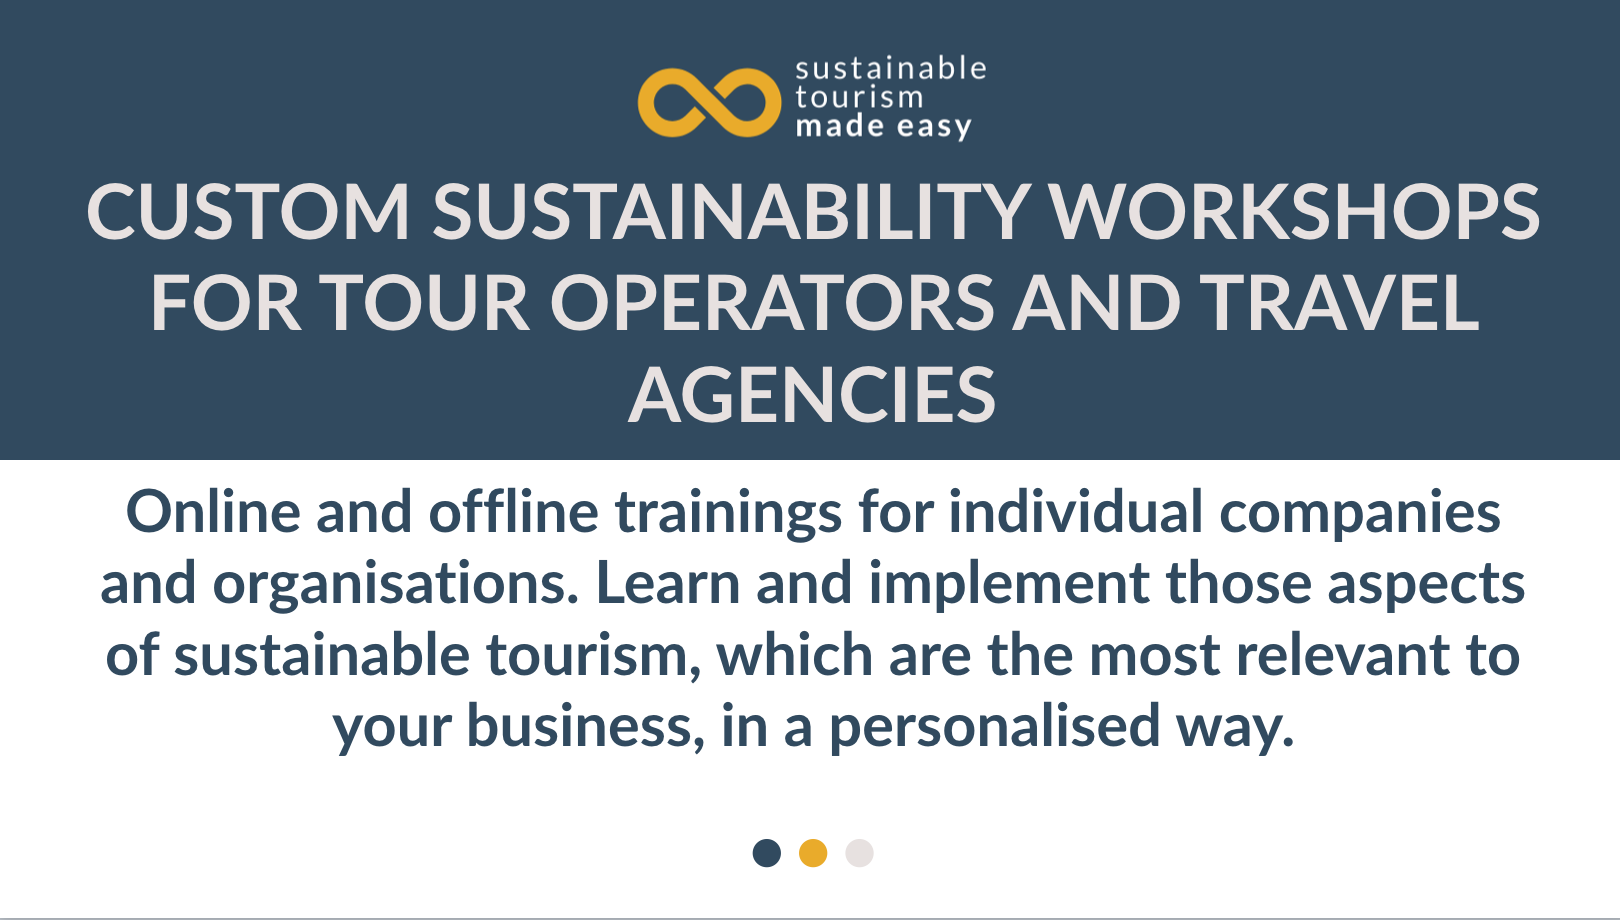 Custom sustainable tourism workshops for tour operators